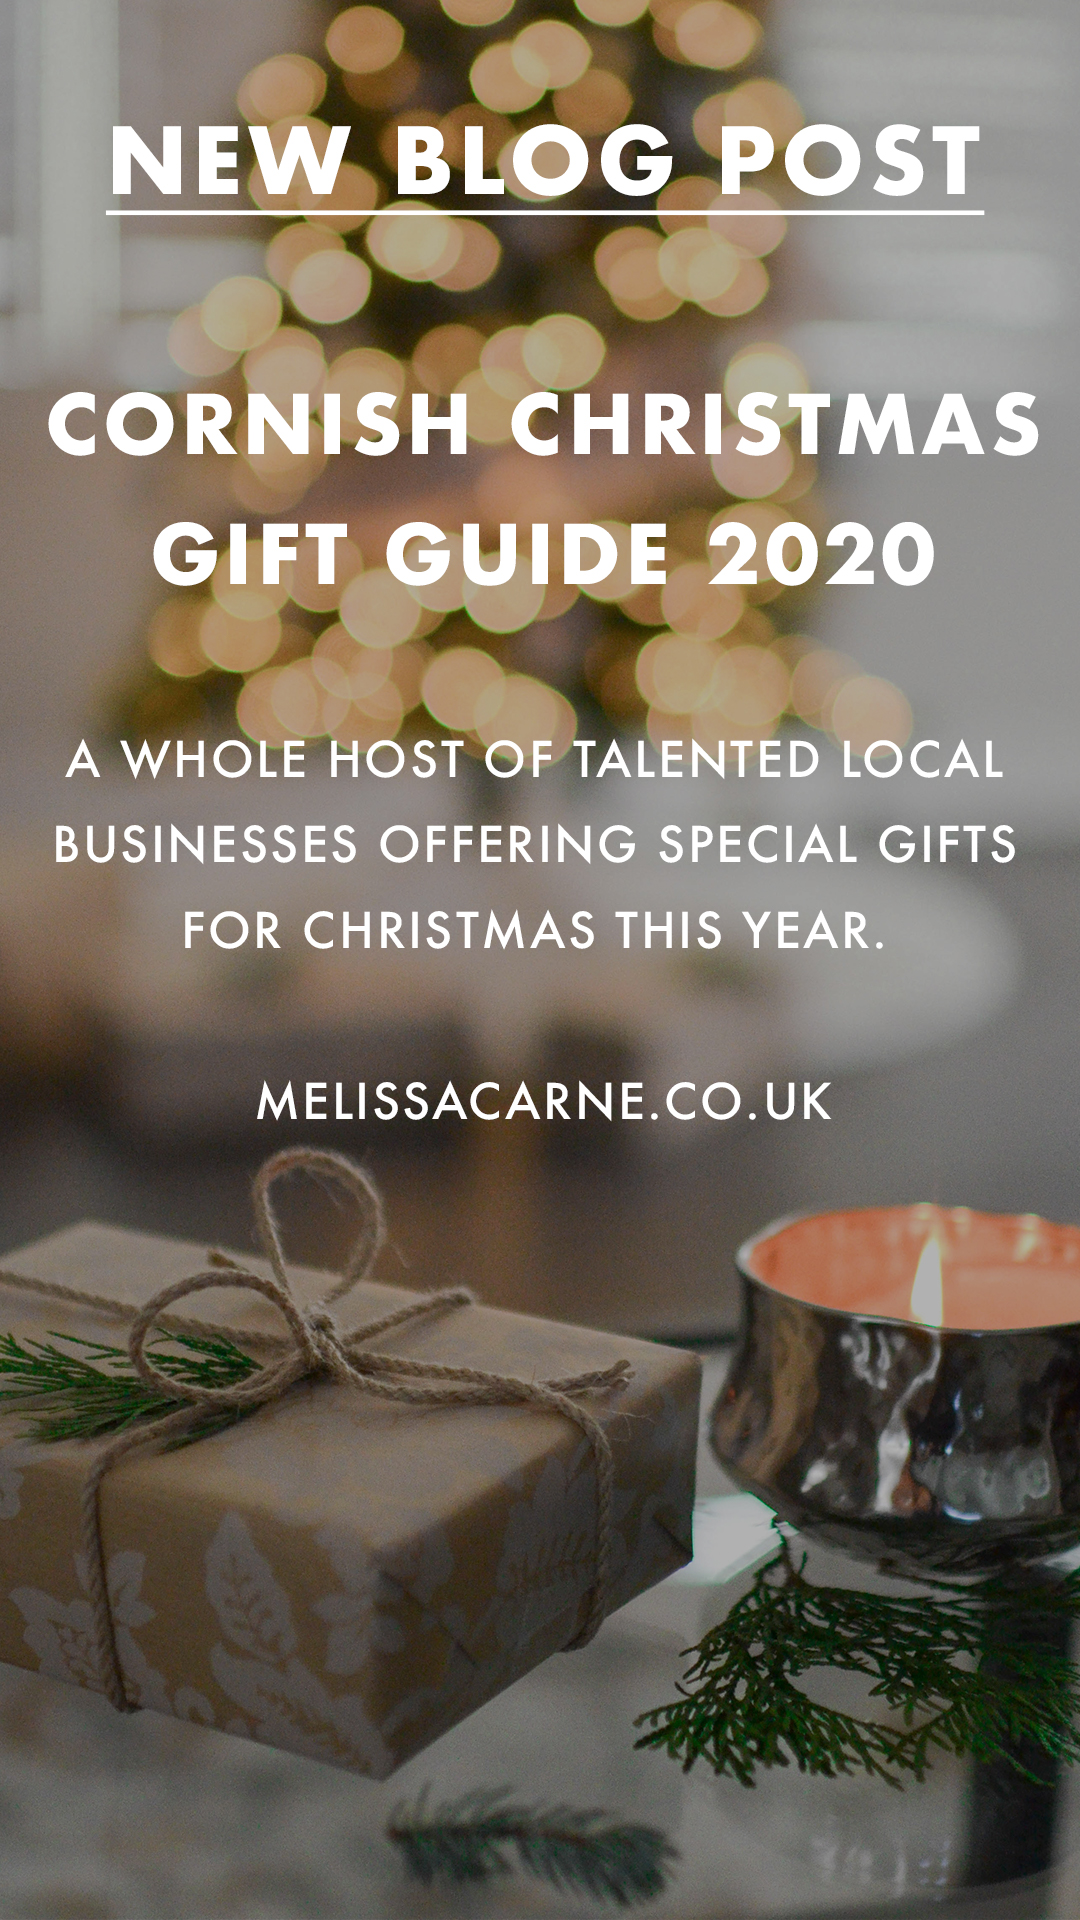 a whole host of talented local cornish businesses offering special gifts for christmas